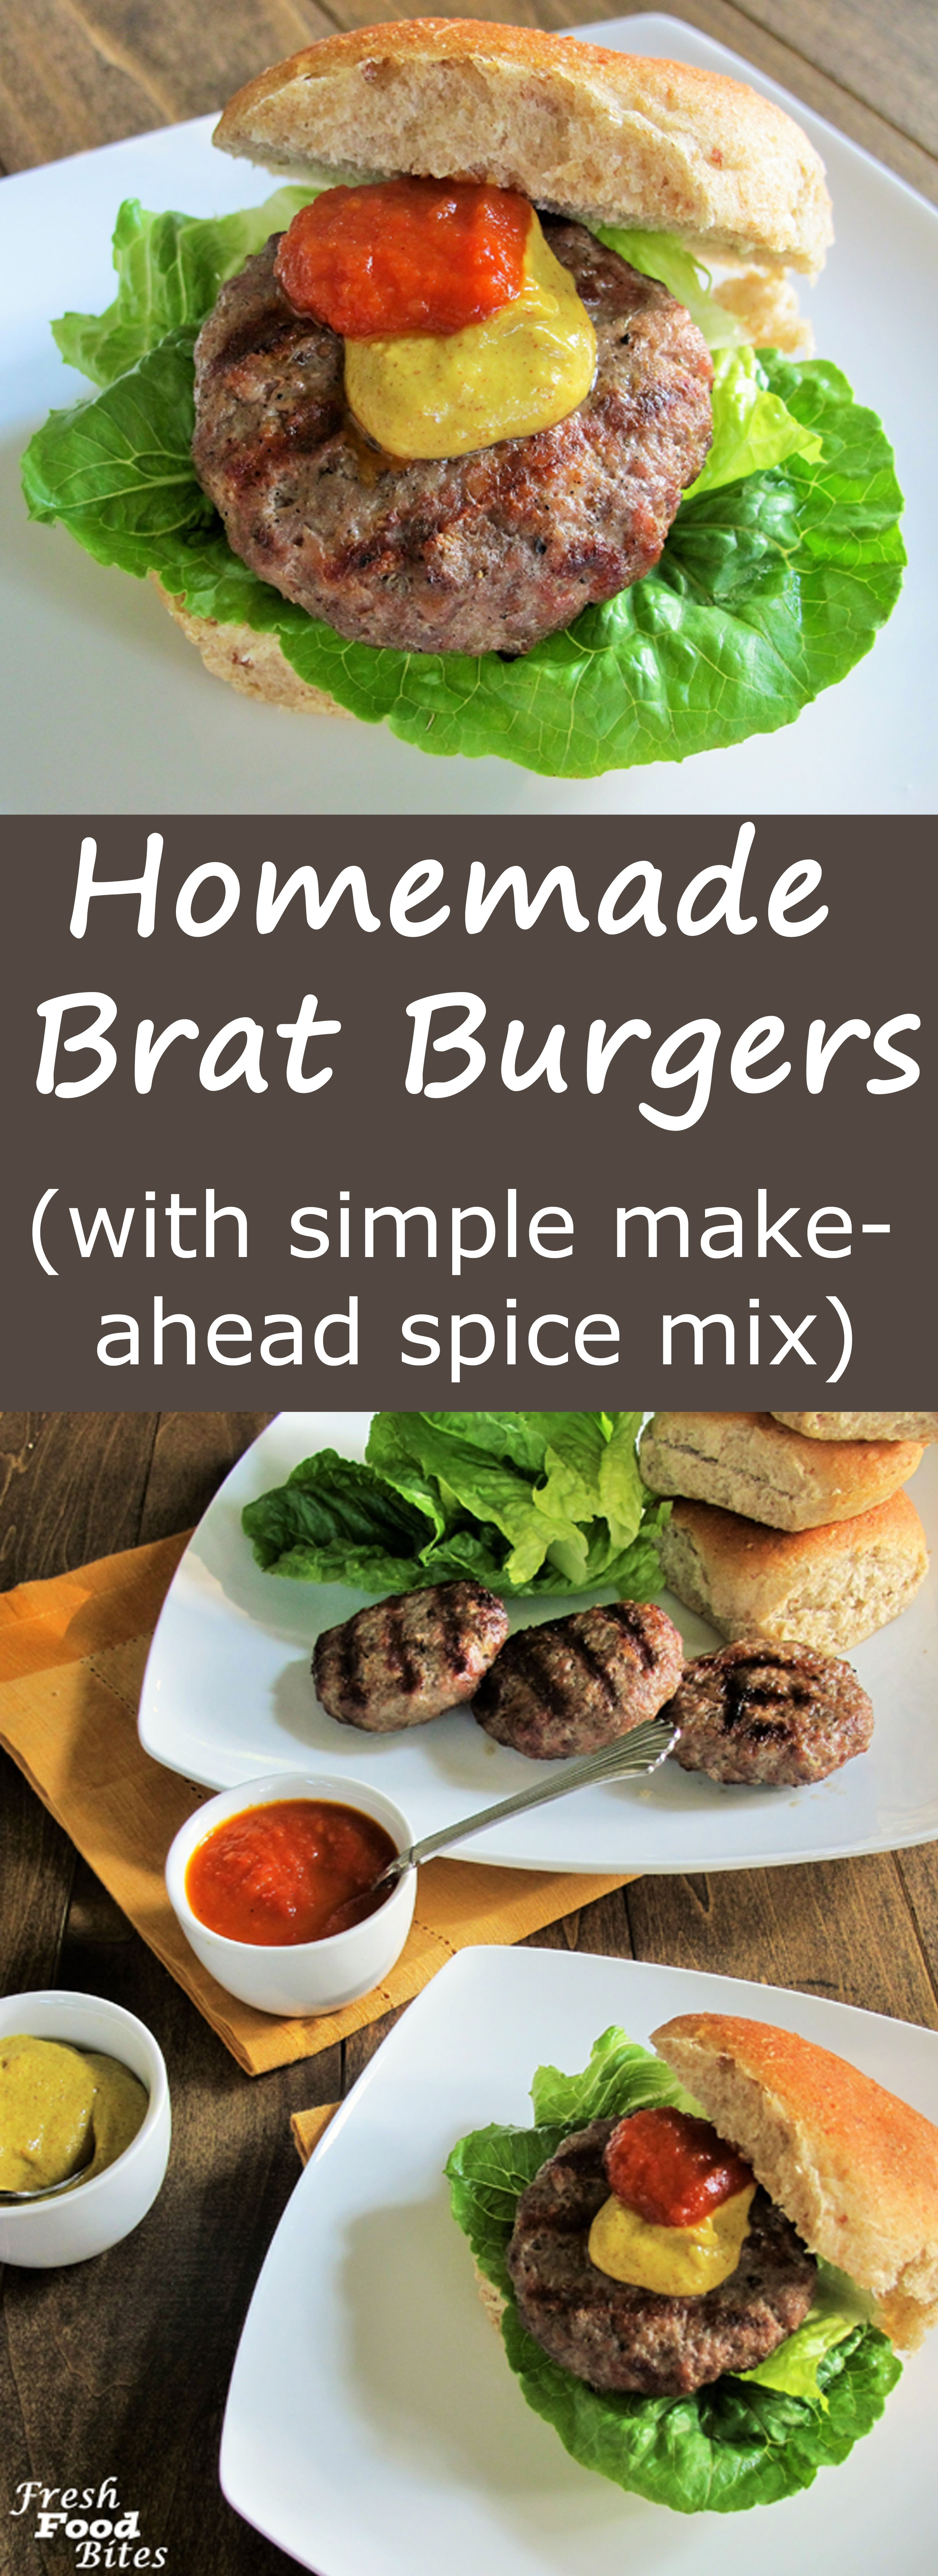 Love brats, but want a healthier version you can pronounce all the ingredients for?